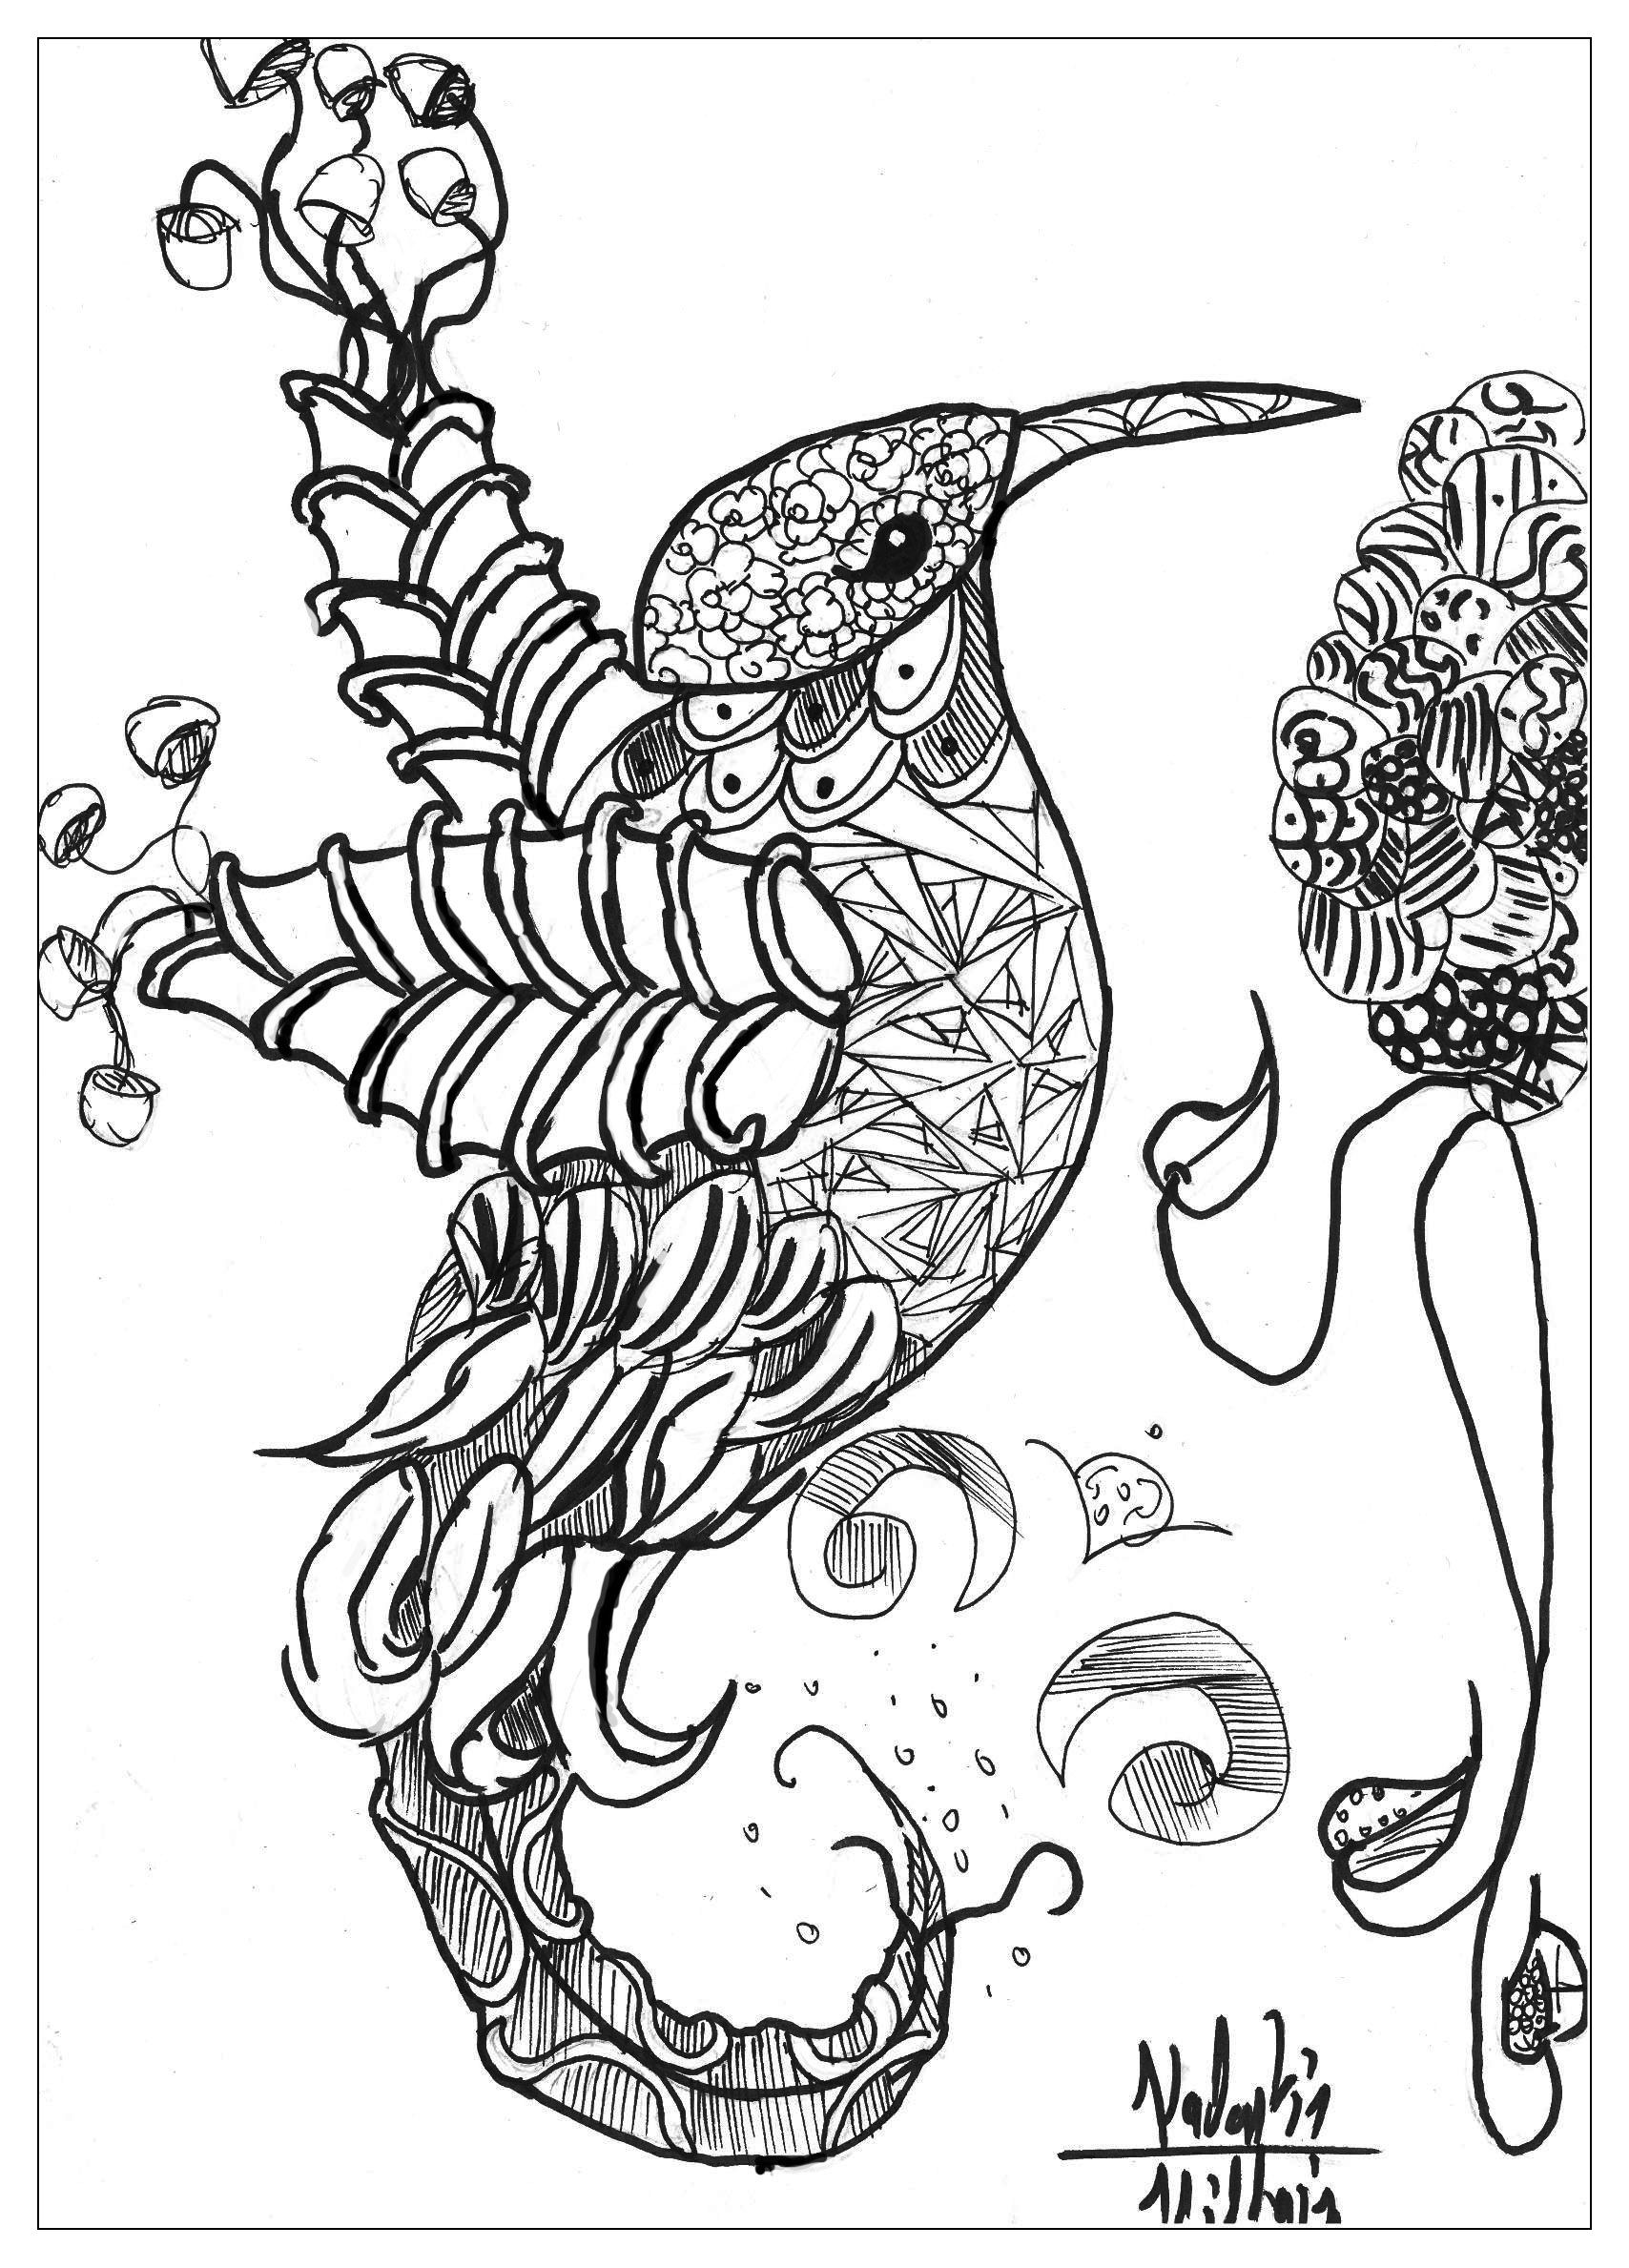 Detailed Animal Coloring Pages For Adults Coloring Home Coloring Pages For Seniors